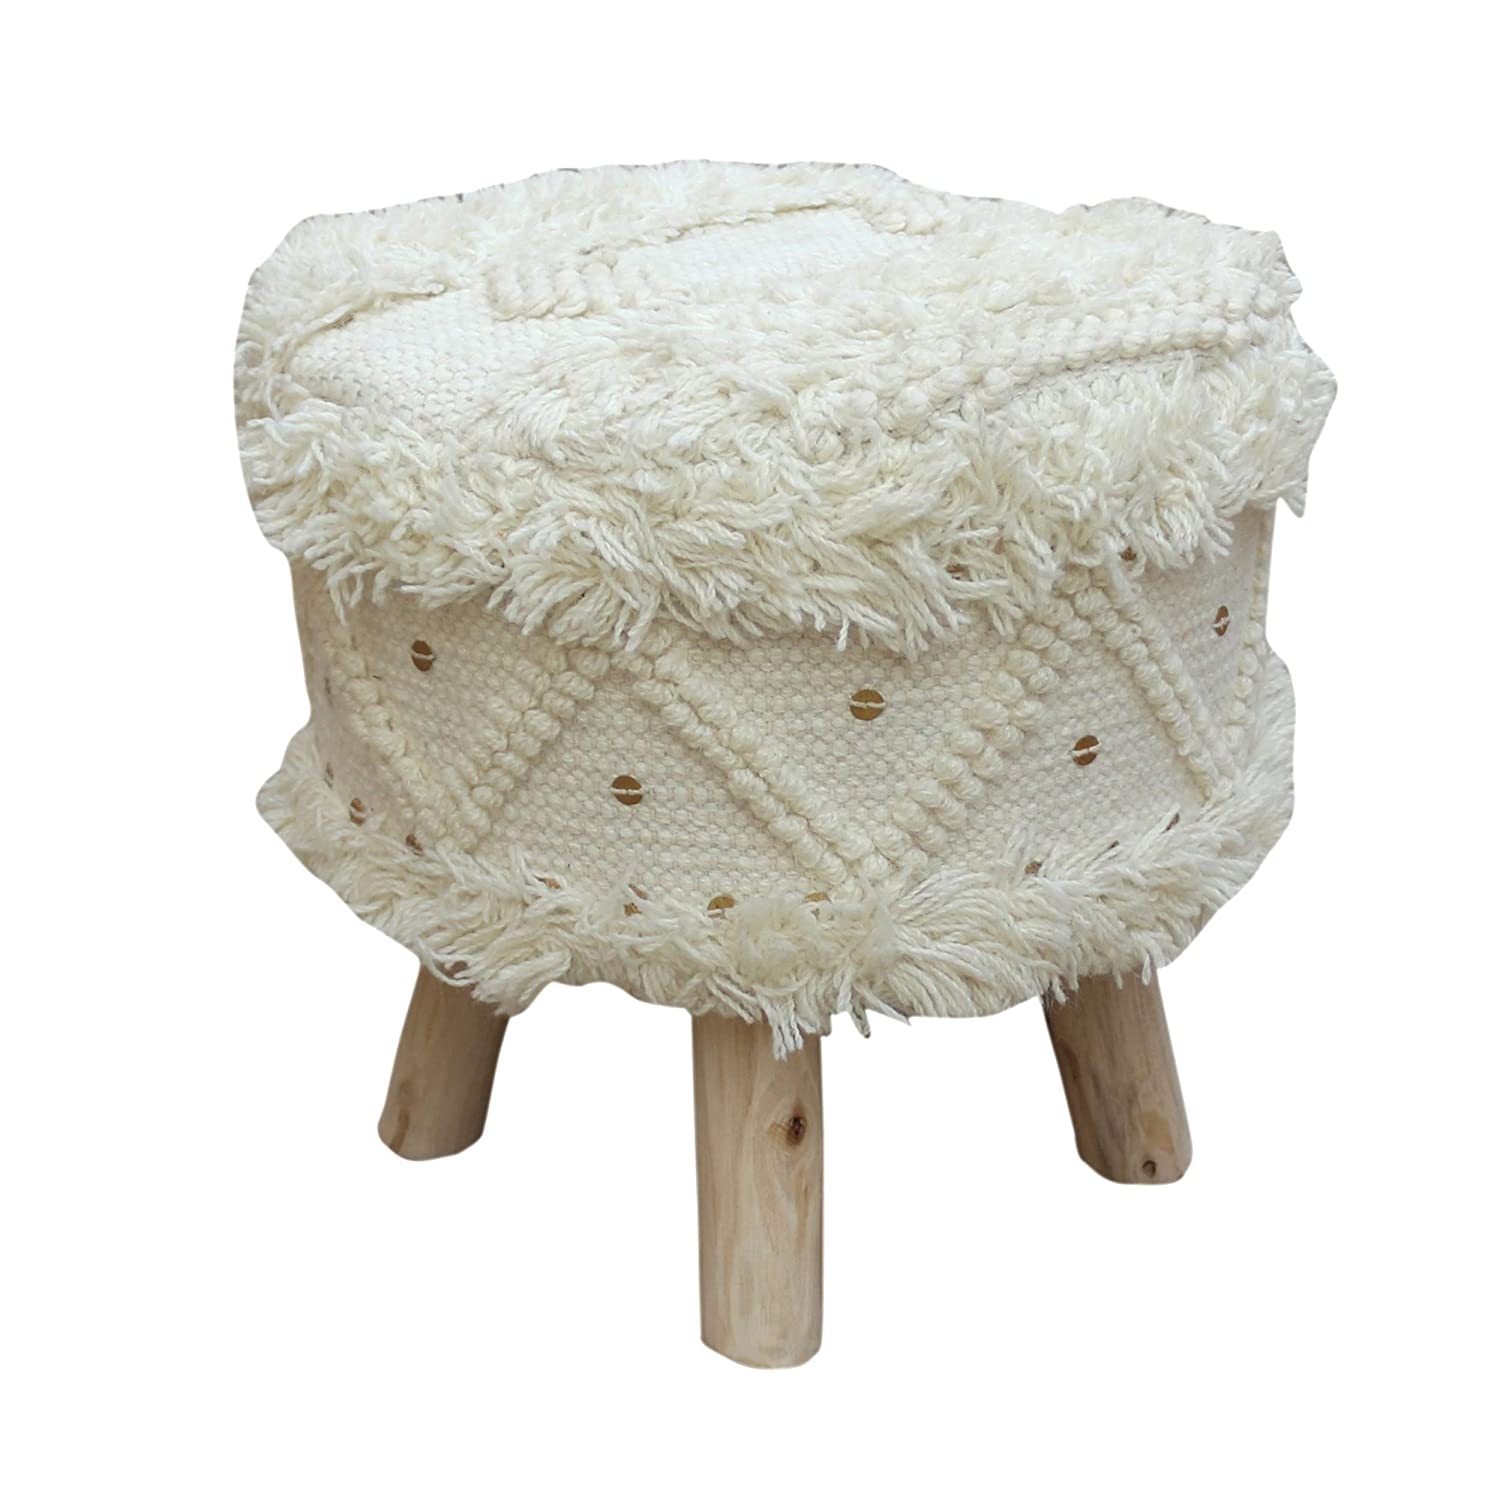 Marvelous Christopher Knight Home Mosiac Wool Boho Stool Ivory Natural Finish Pdpeps Interior Chair Design Pdpepsorg